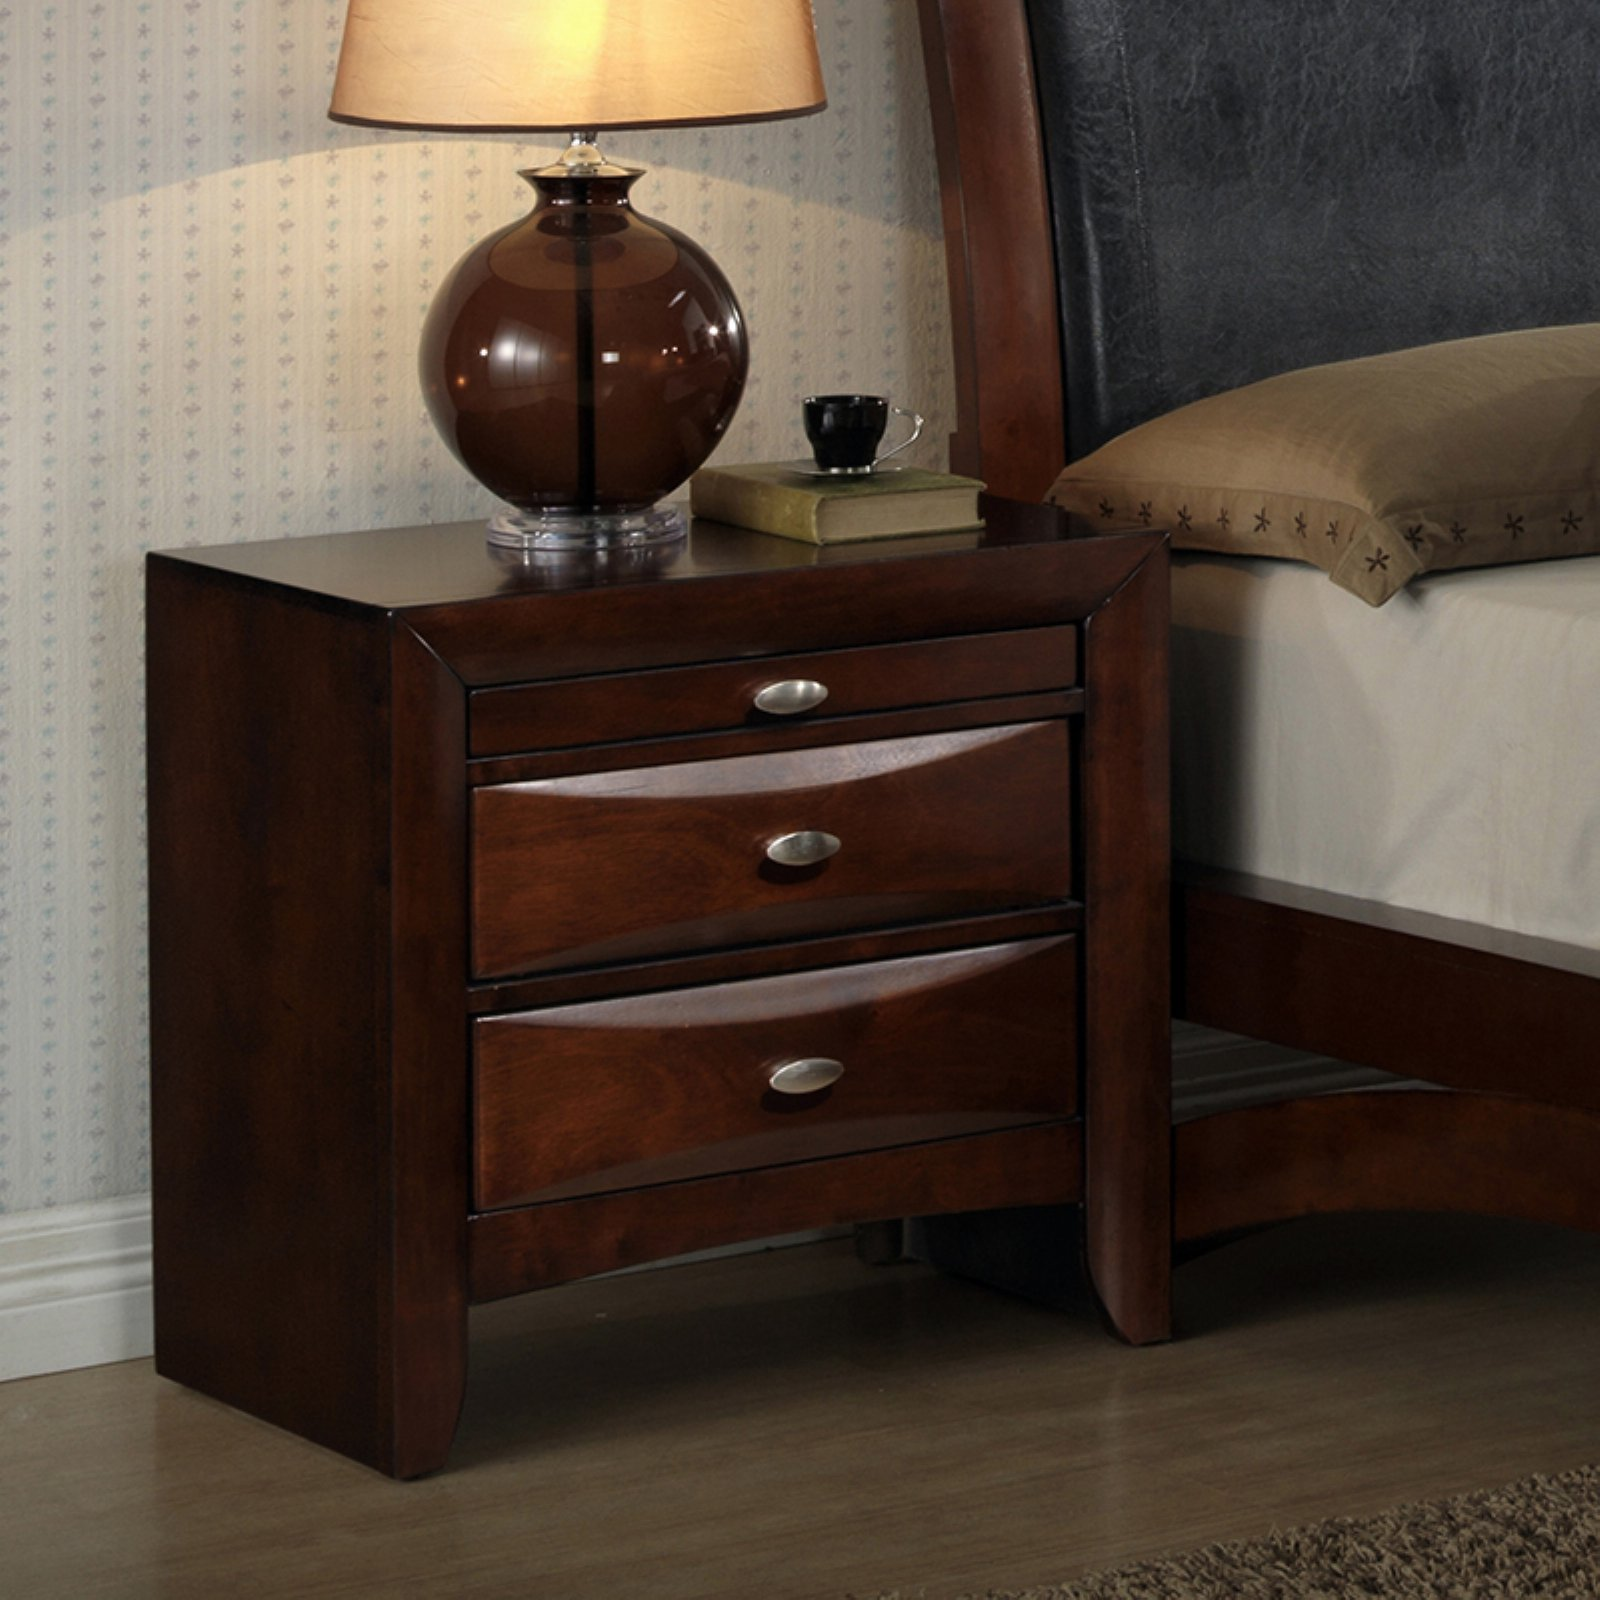 Roundhill Emily Contemporary Solid Wood Construction Nightstand, Espresso